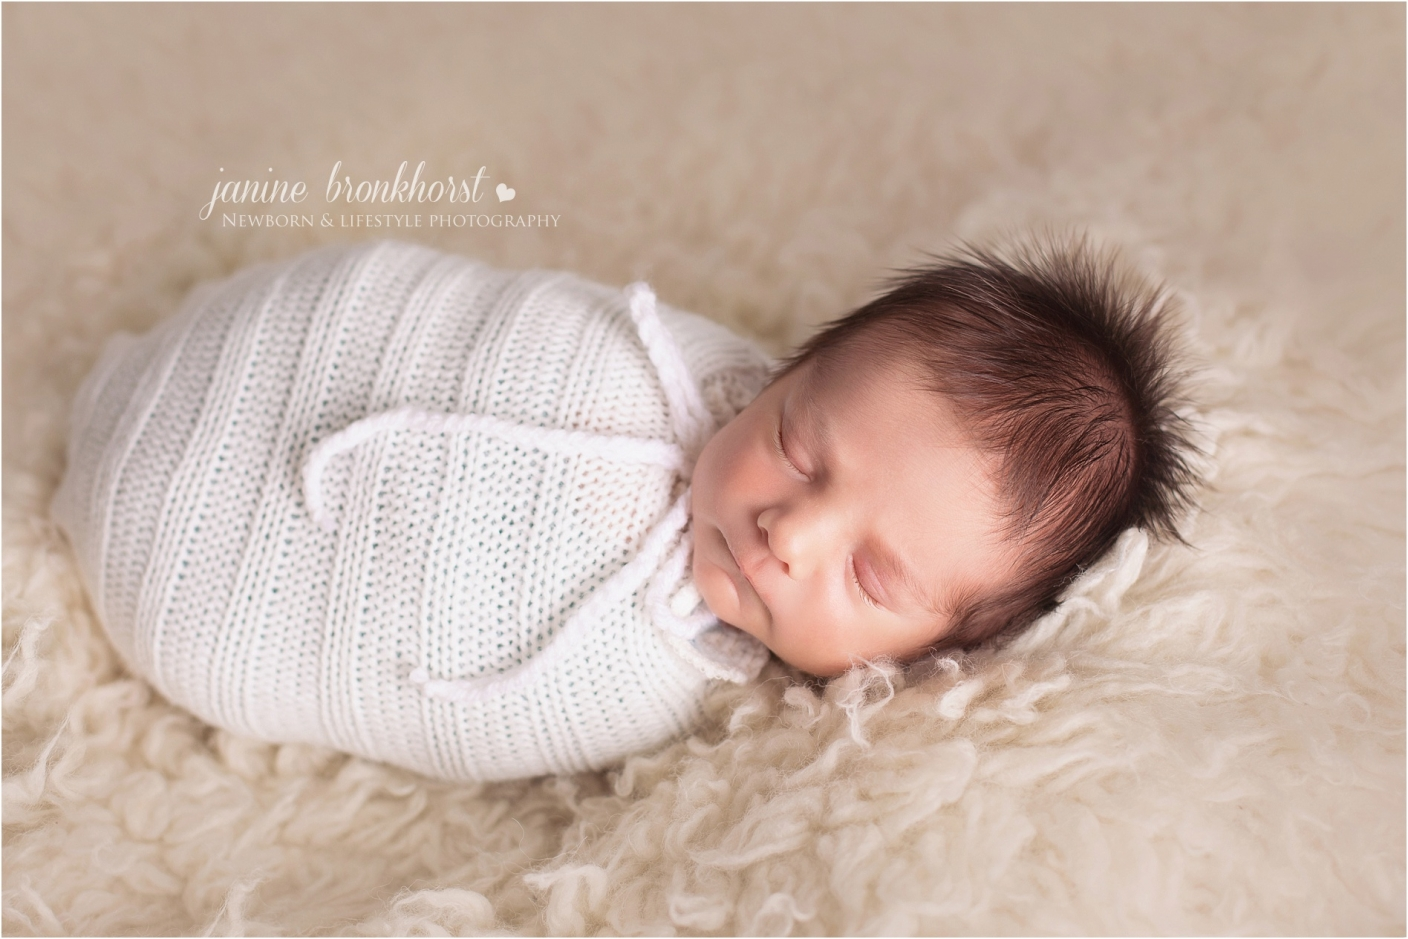 cape_town_newborn_photography_4644